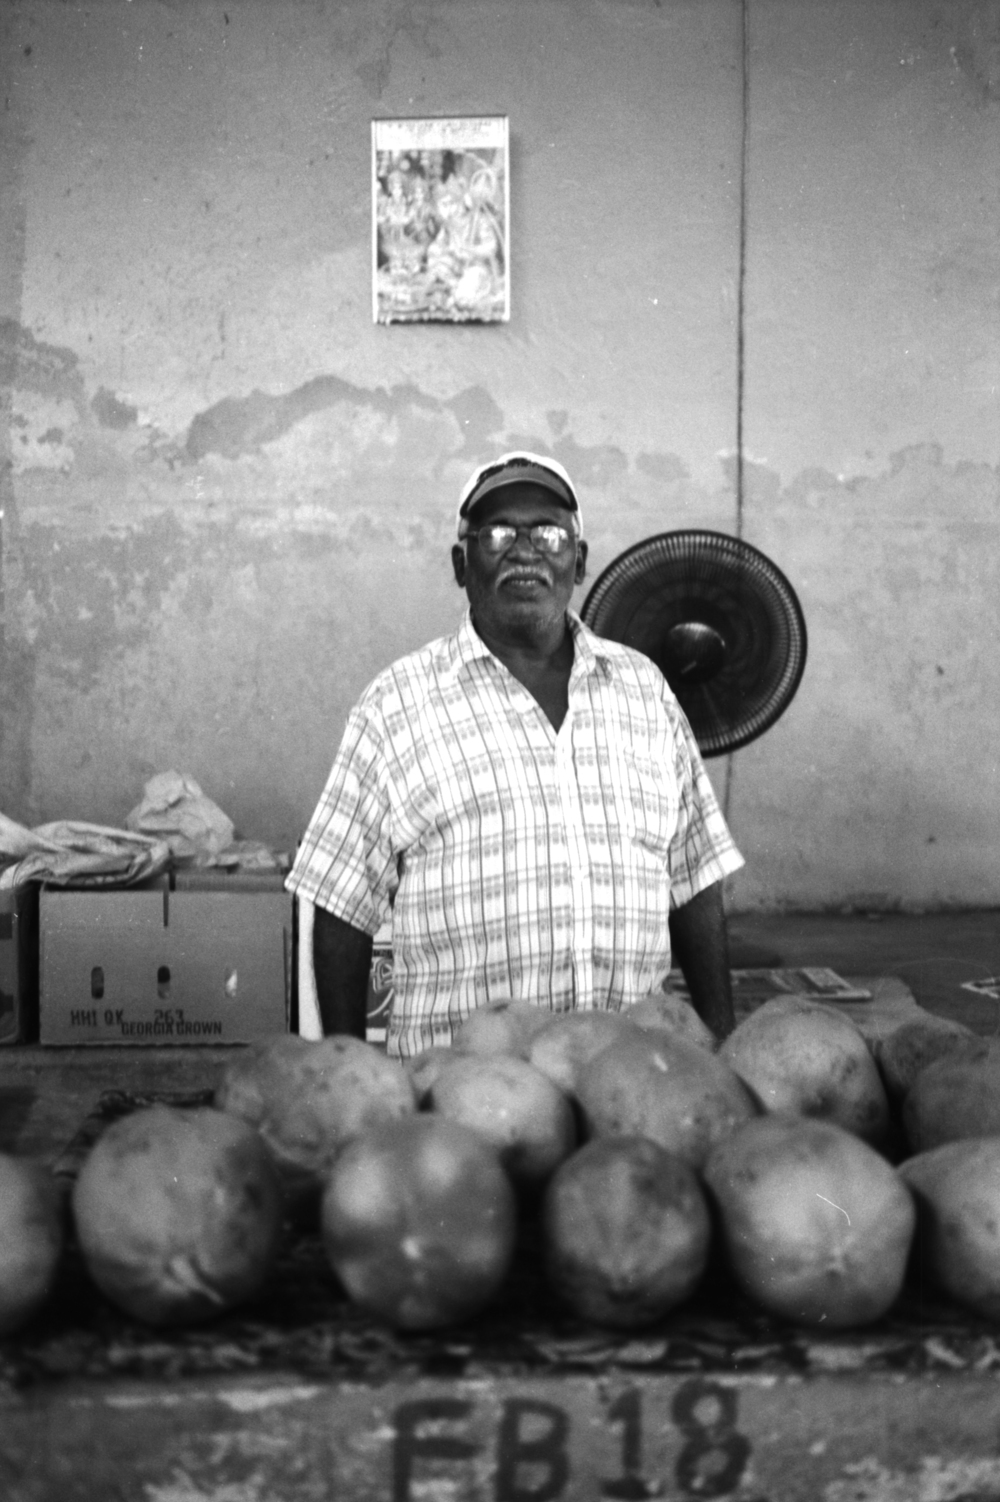 Local selling coconuts at the towns market. It amazed me at how he asked for his picture to be taken, he never asked what was going to be done with the image or anything like that. He was just happy to have his picture taken even though he would mostly never see the outcome of it.